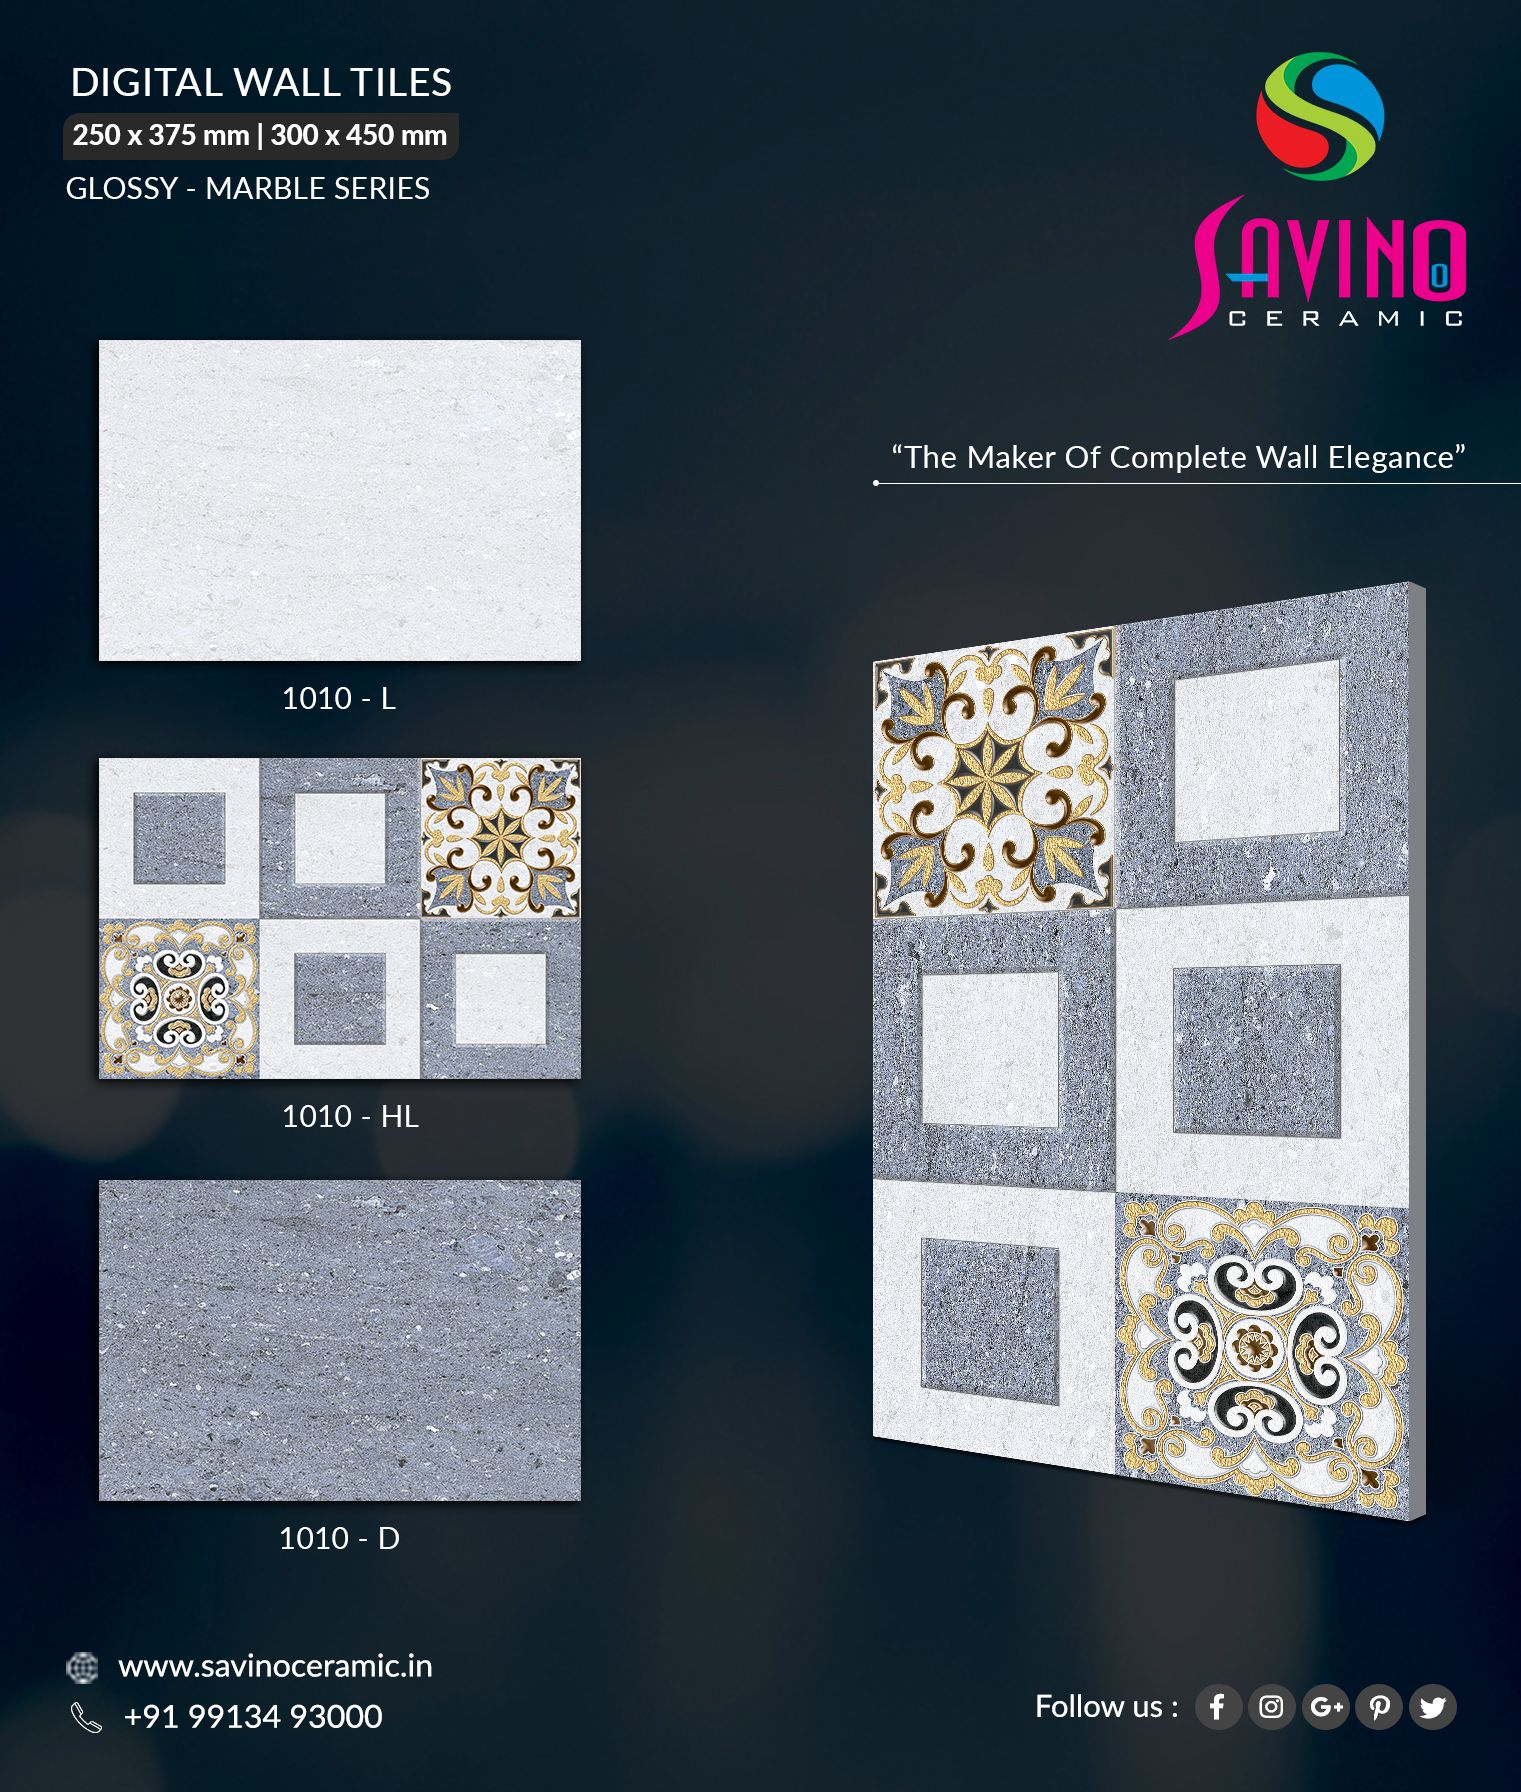 Pin By Jaydip On Flowers Wall Tiles Digital Wall Tiles